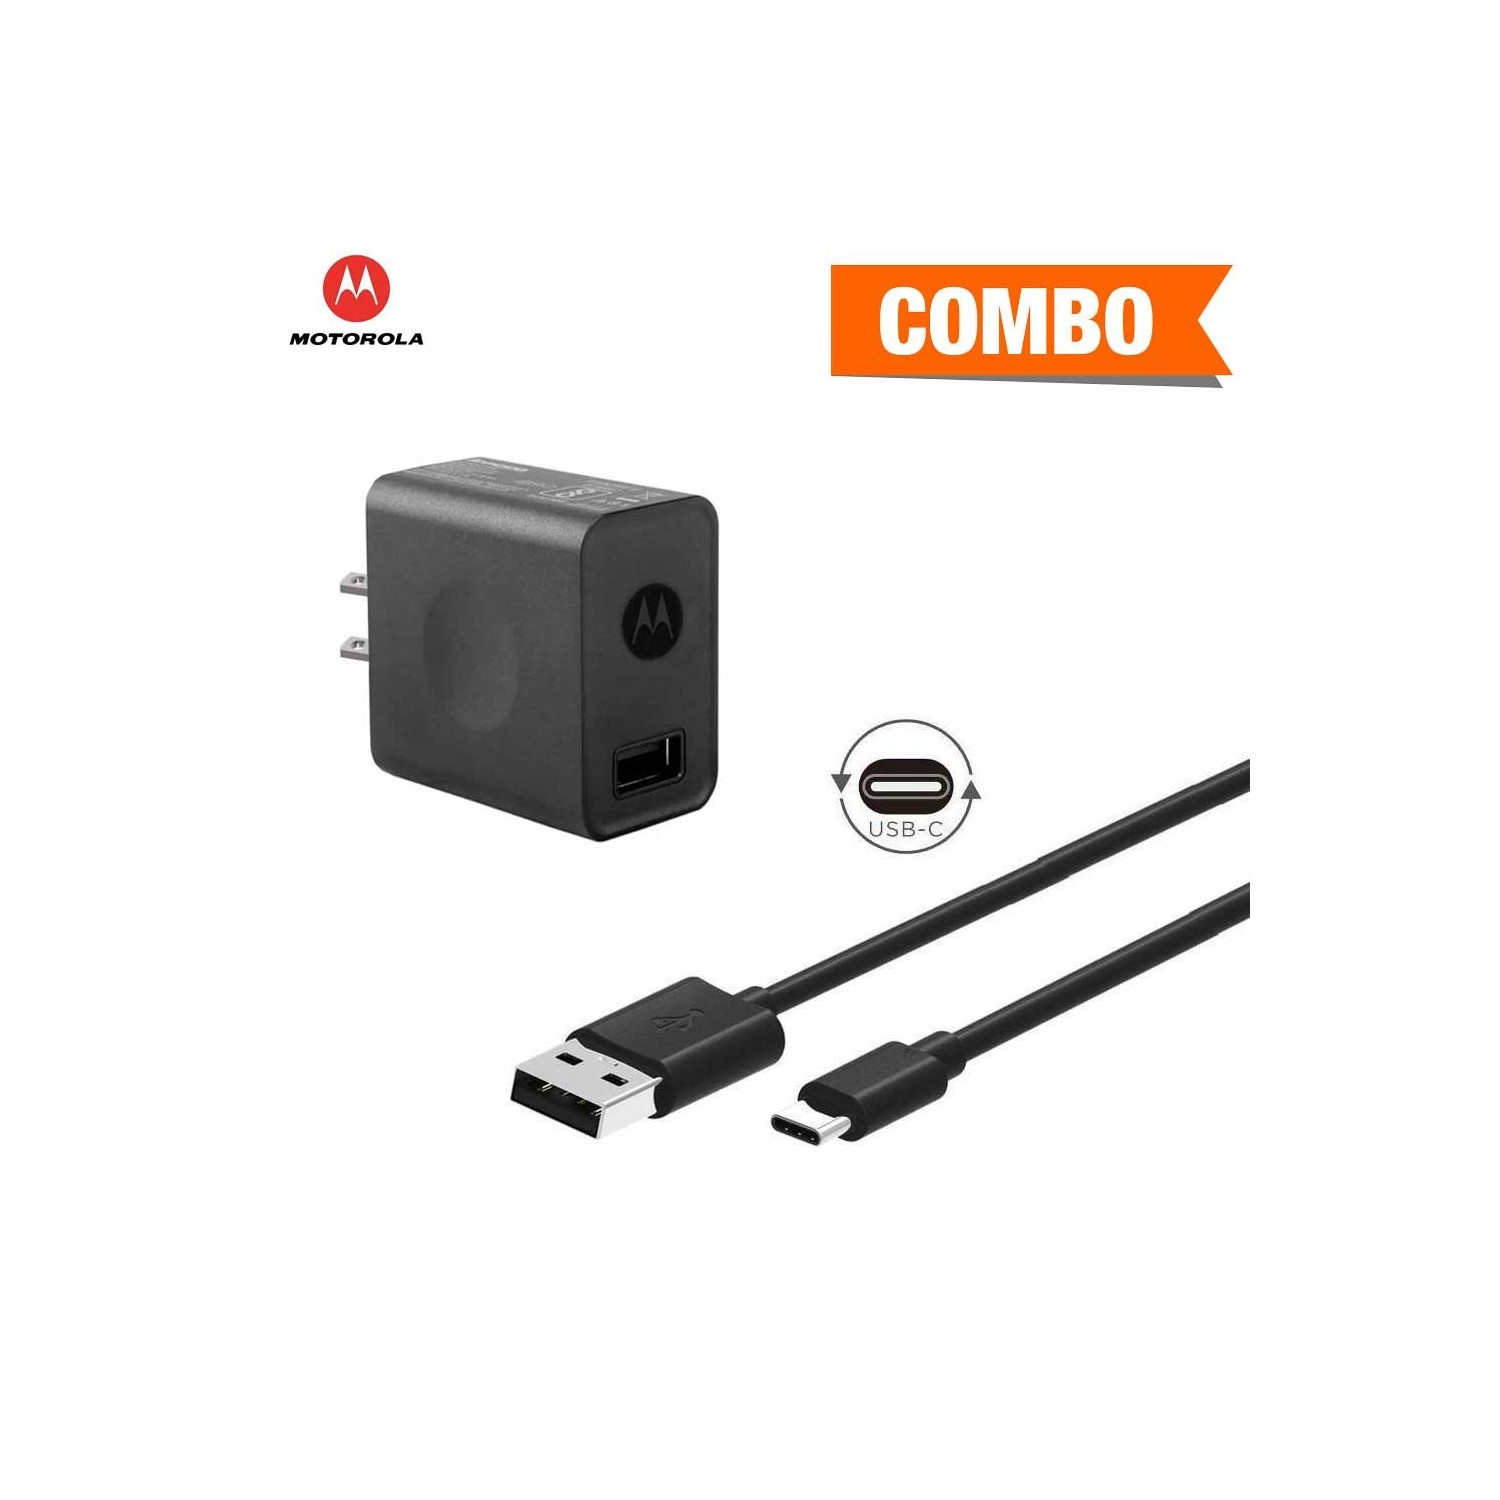 Charger MOTOROLA CP35 + USB-C Cable Combo